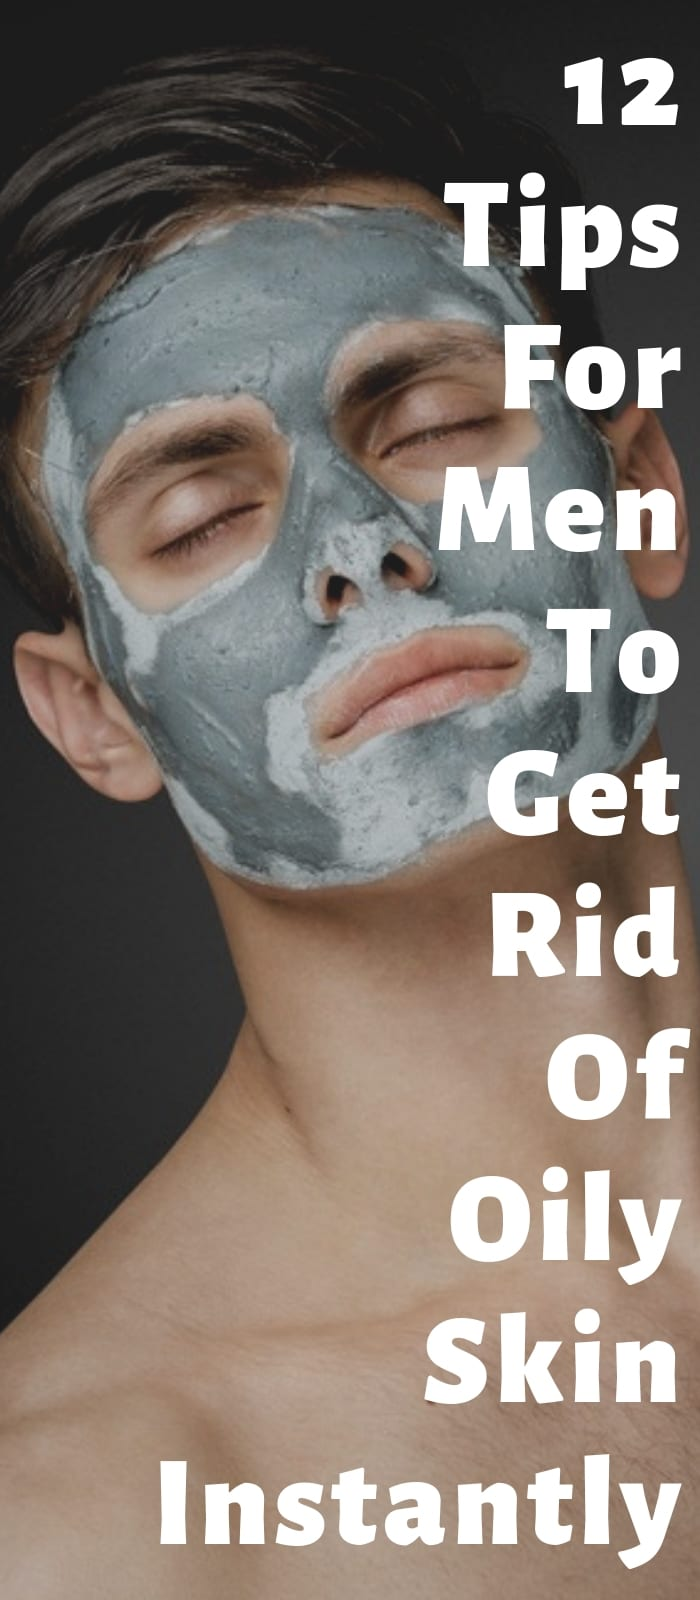 12 Tips For Men To Get Rid Of Oily Skin Instantly